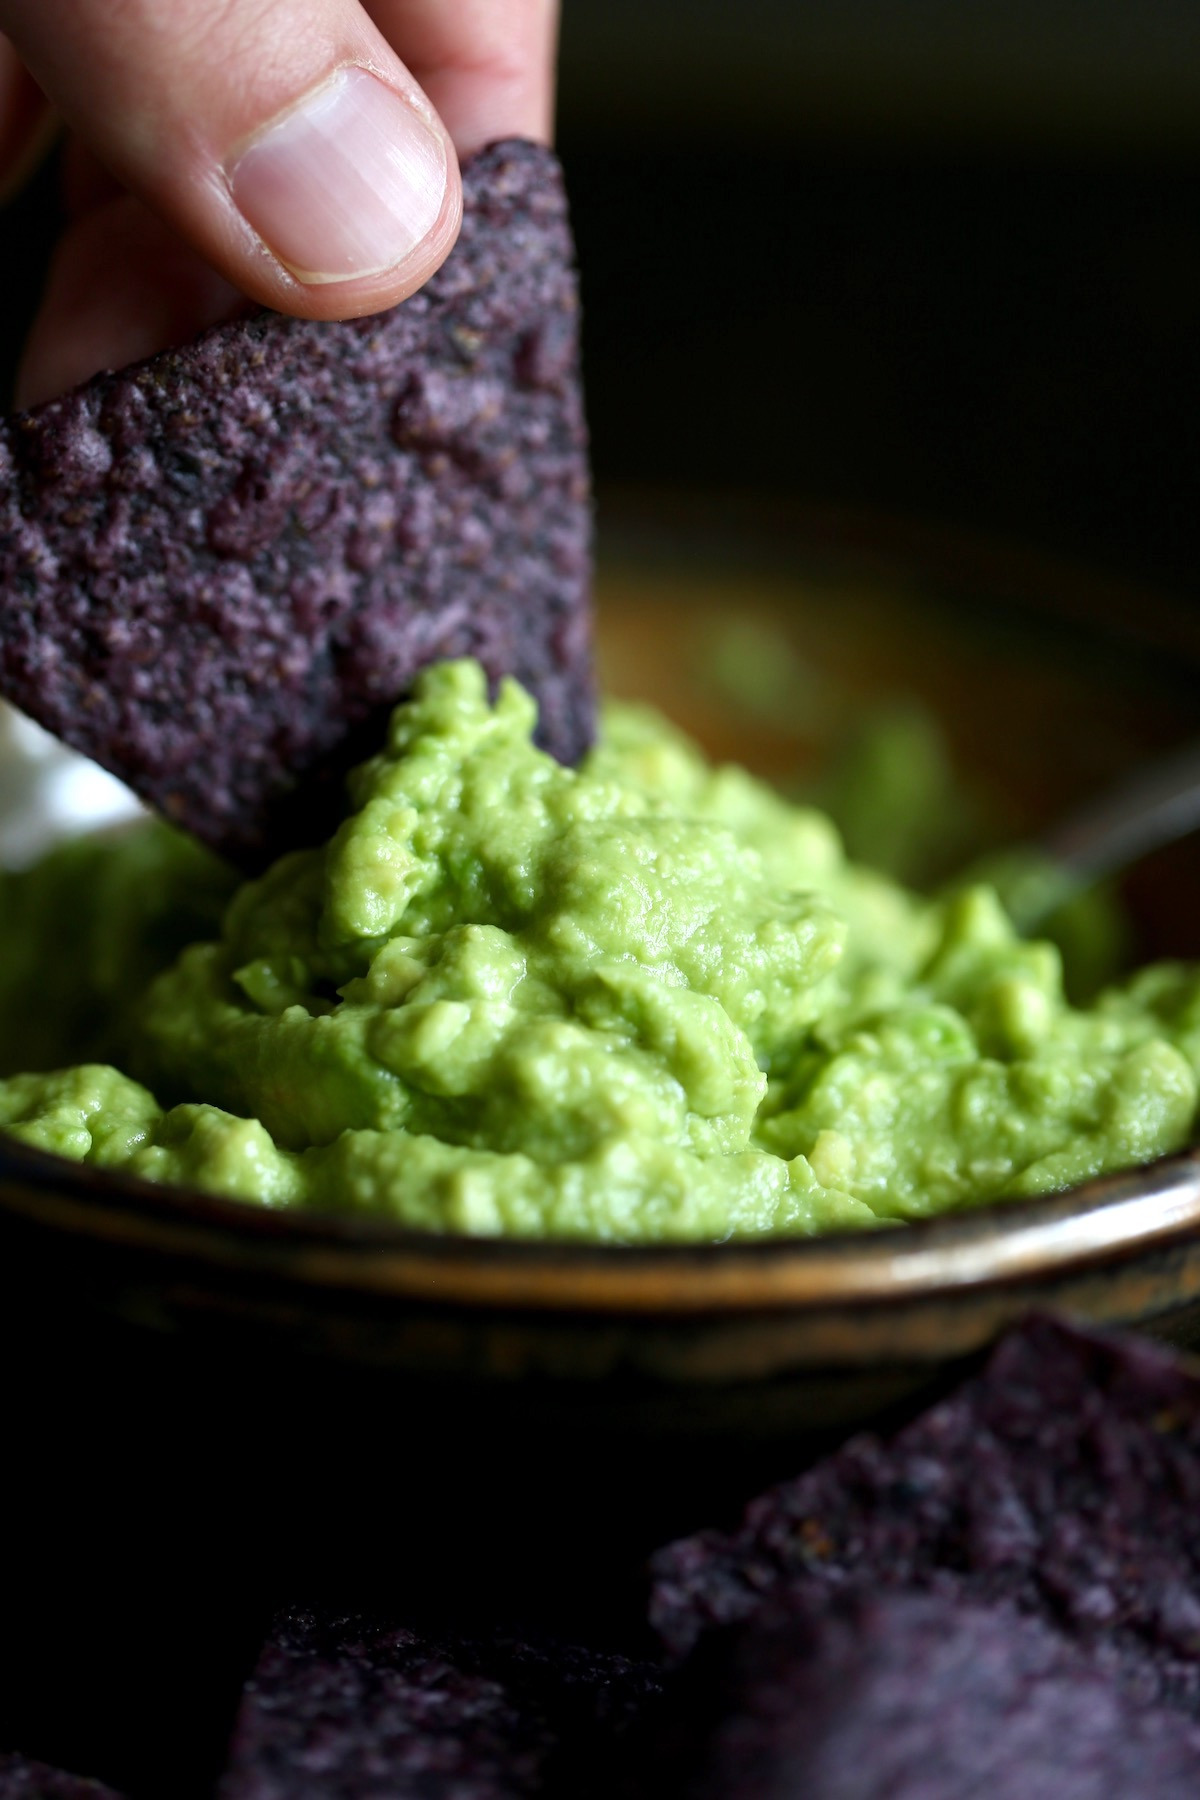 a blue corn tortilla chip scooping up some vibrant green guacamole